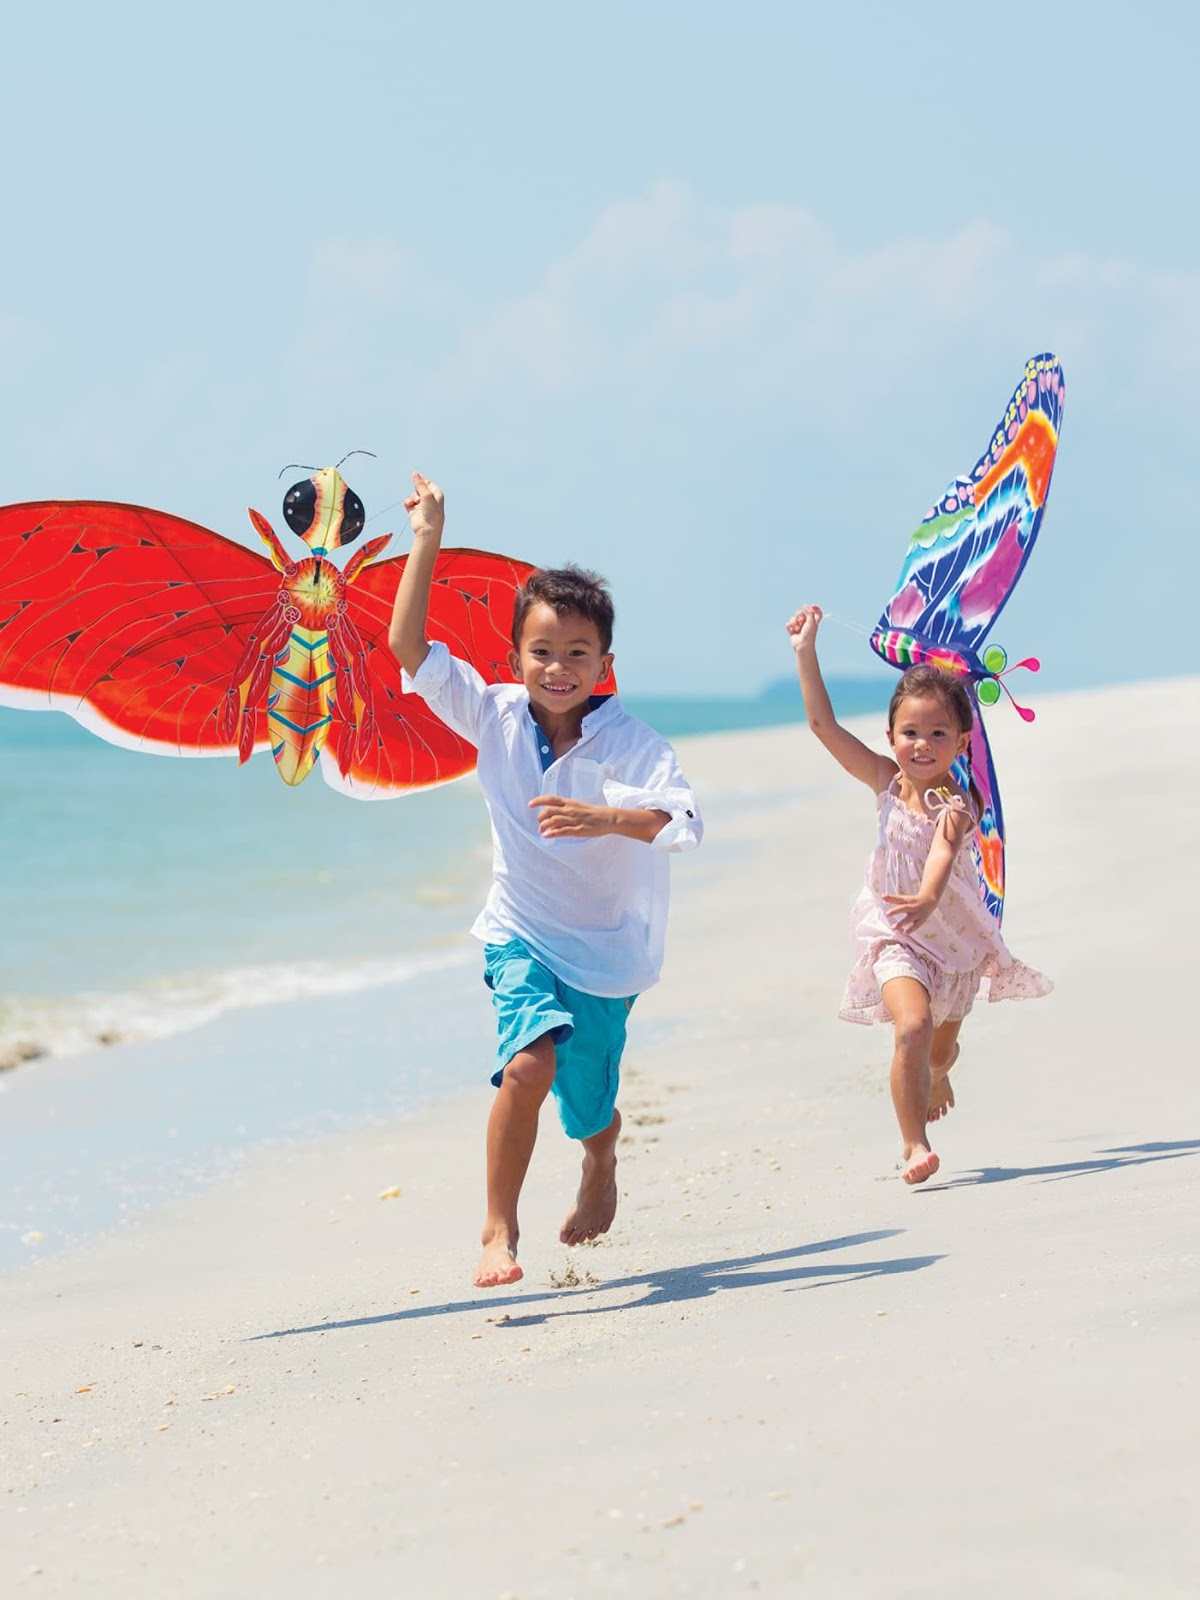 A girl and a boy playing with kites on the beach